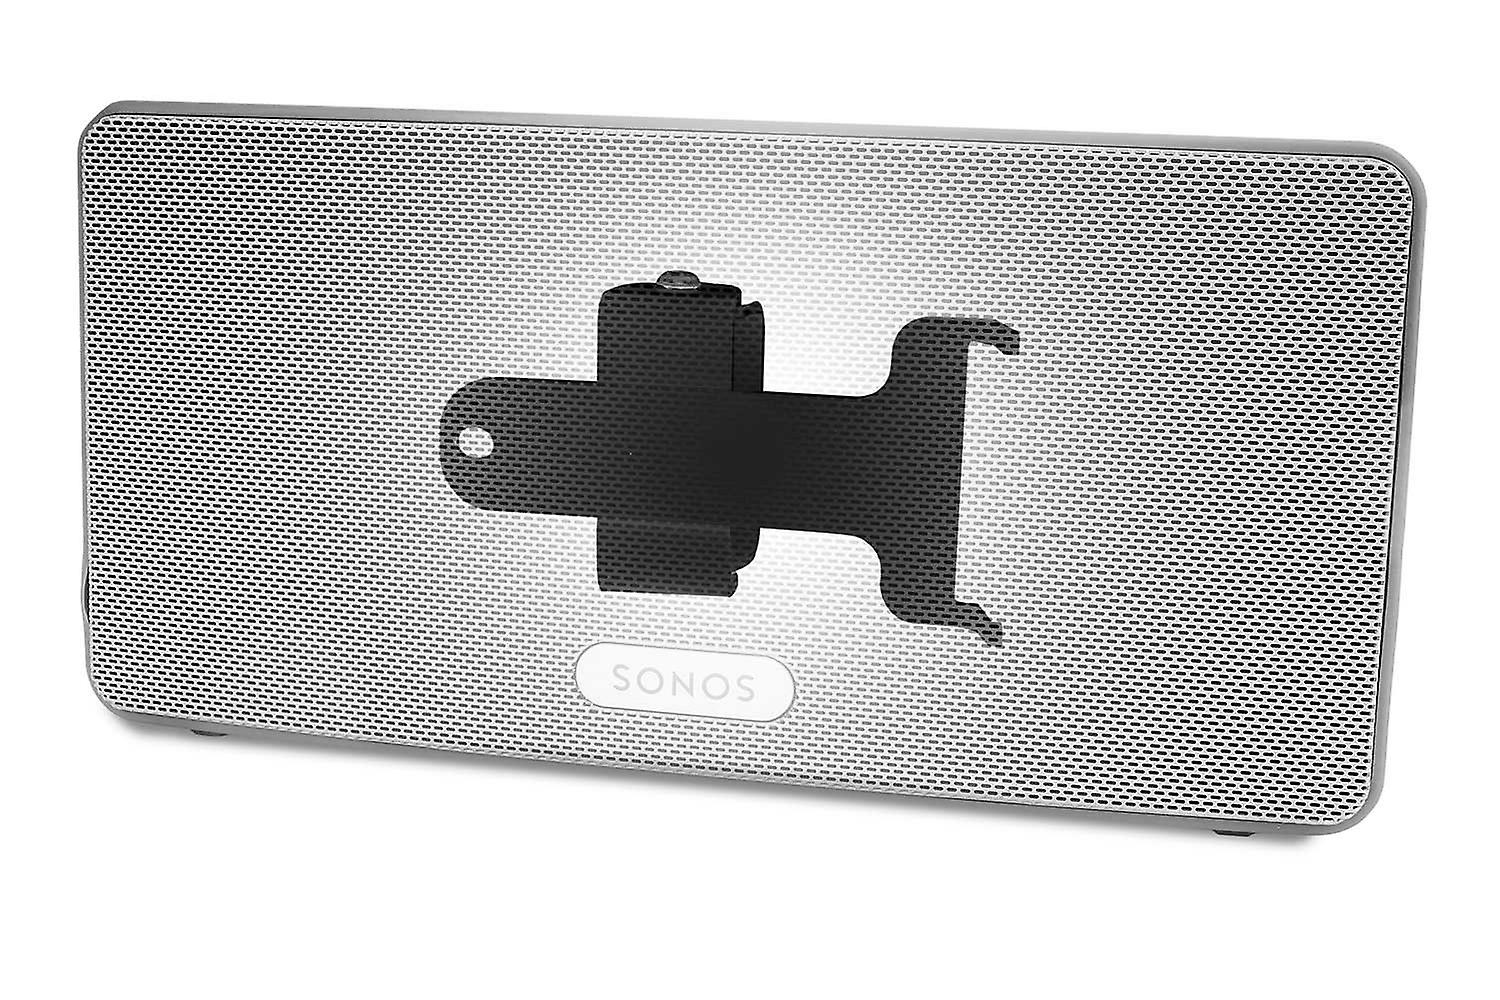 Vebos wall bracket Sonos Play 3 black